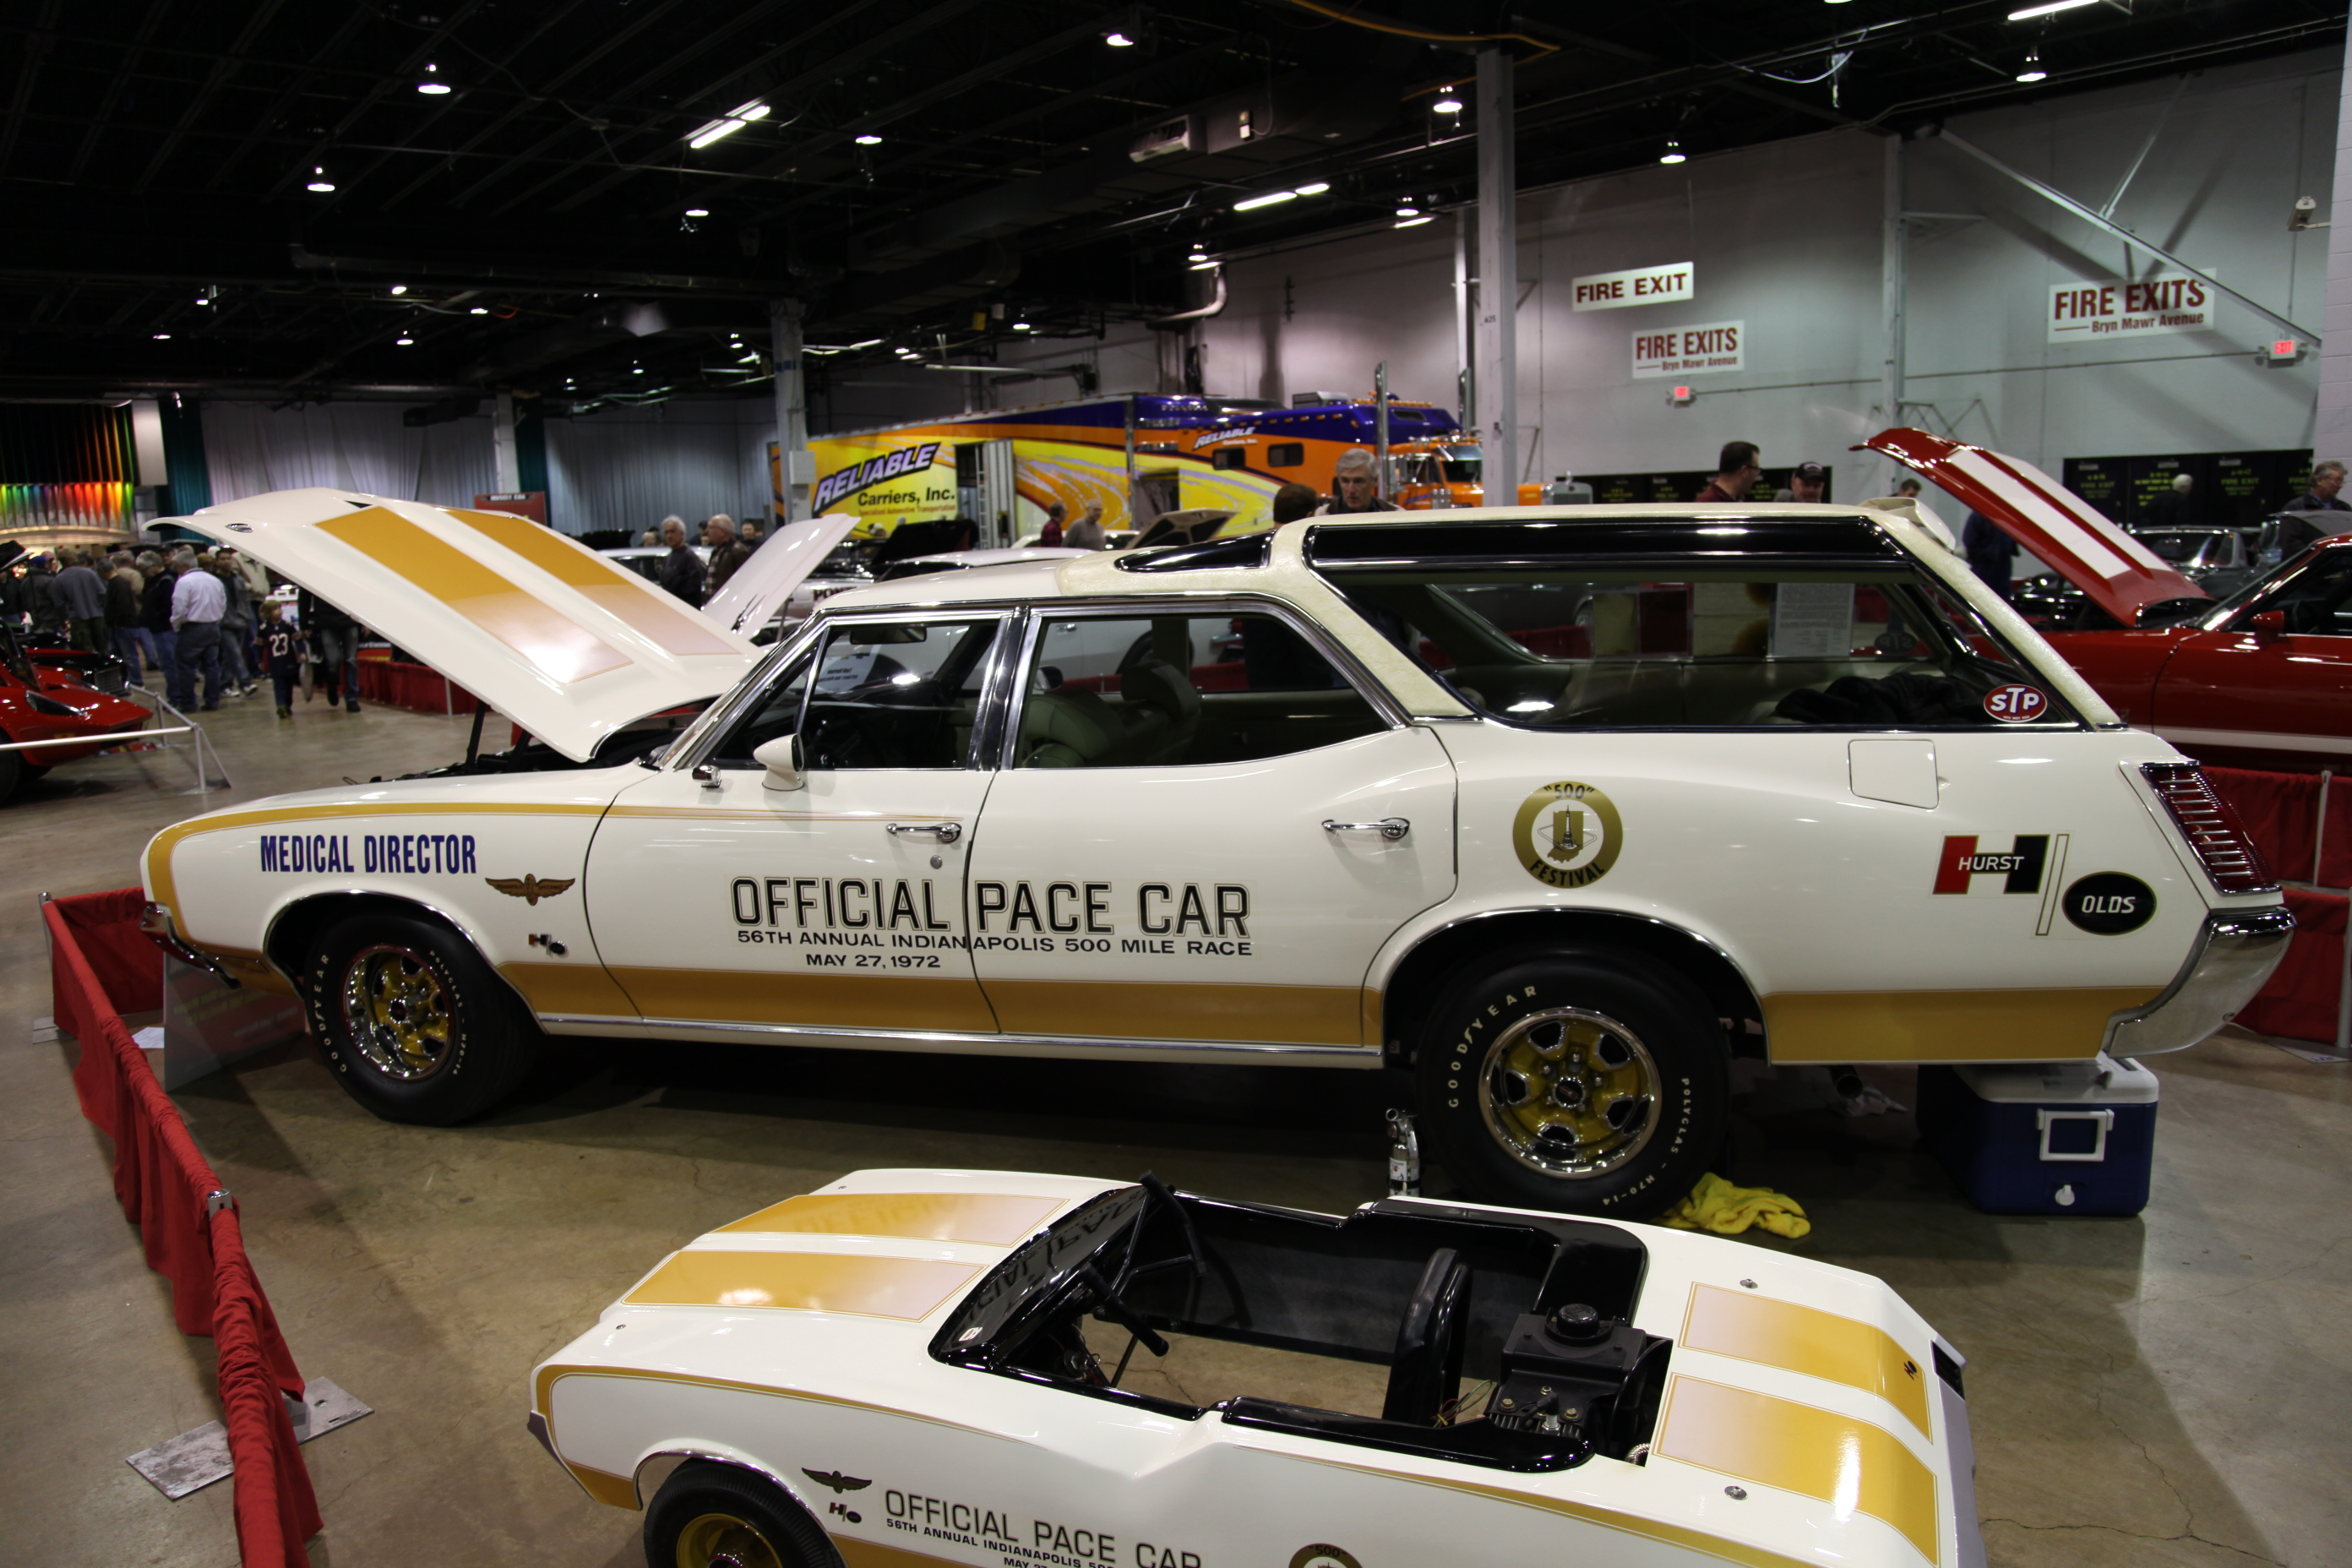 1972 Indy 500 pace car, pace car wagon, 1972 Oldsmobile wagon